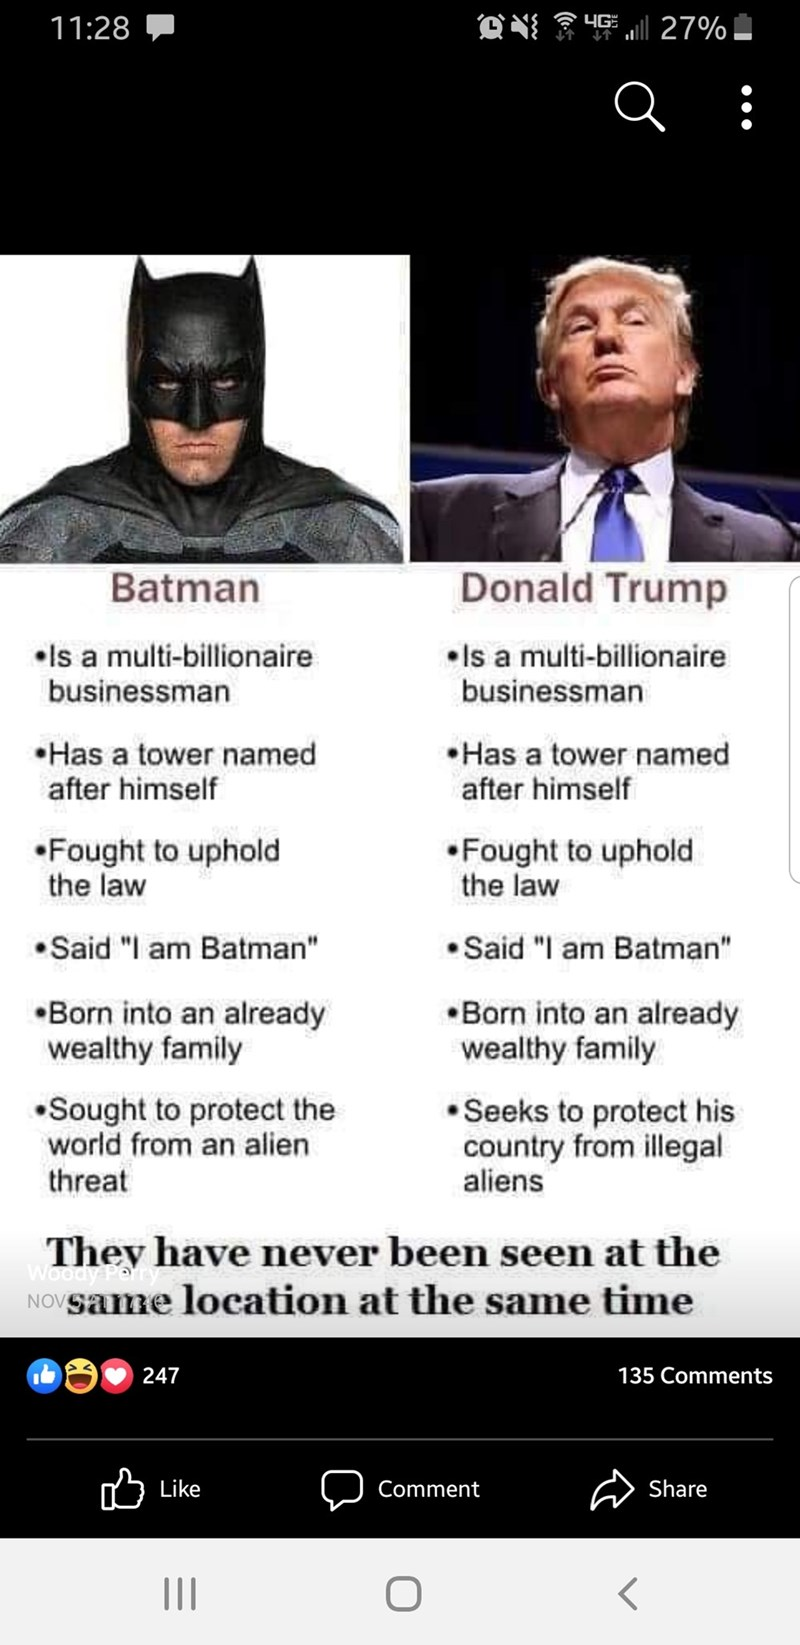 """Text - Batman - gN 4GE a27% 11:28 Batman Donald Trump .Is a multi-billionaire businessman Is a multi-billionaire businessman Has a tower named after himself Has a tower named after himself Fought to uphold the law Fought to uphold the law Said """"I am Batman"""" Said """"I am Batman"""" Born into an already wealthy family Born into an already wealthy family Sought to protect the world from an alien threat Seeks to protect his country from illegal aliens They have never been seen at the Woody NOV same locat"""